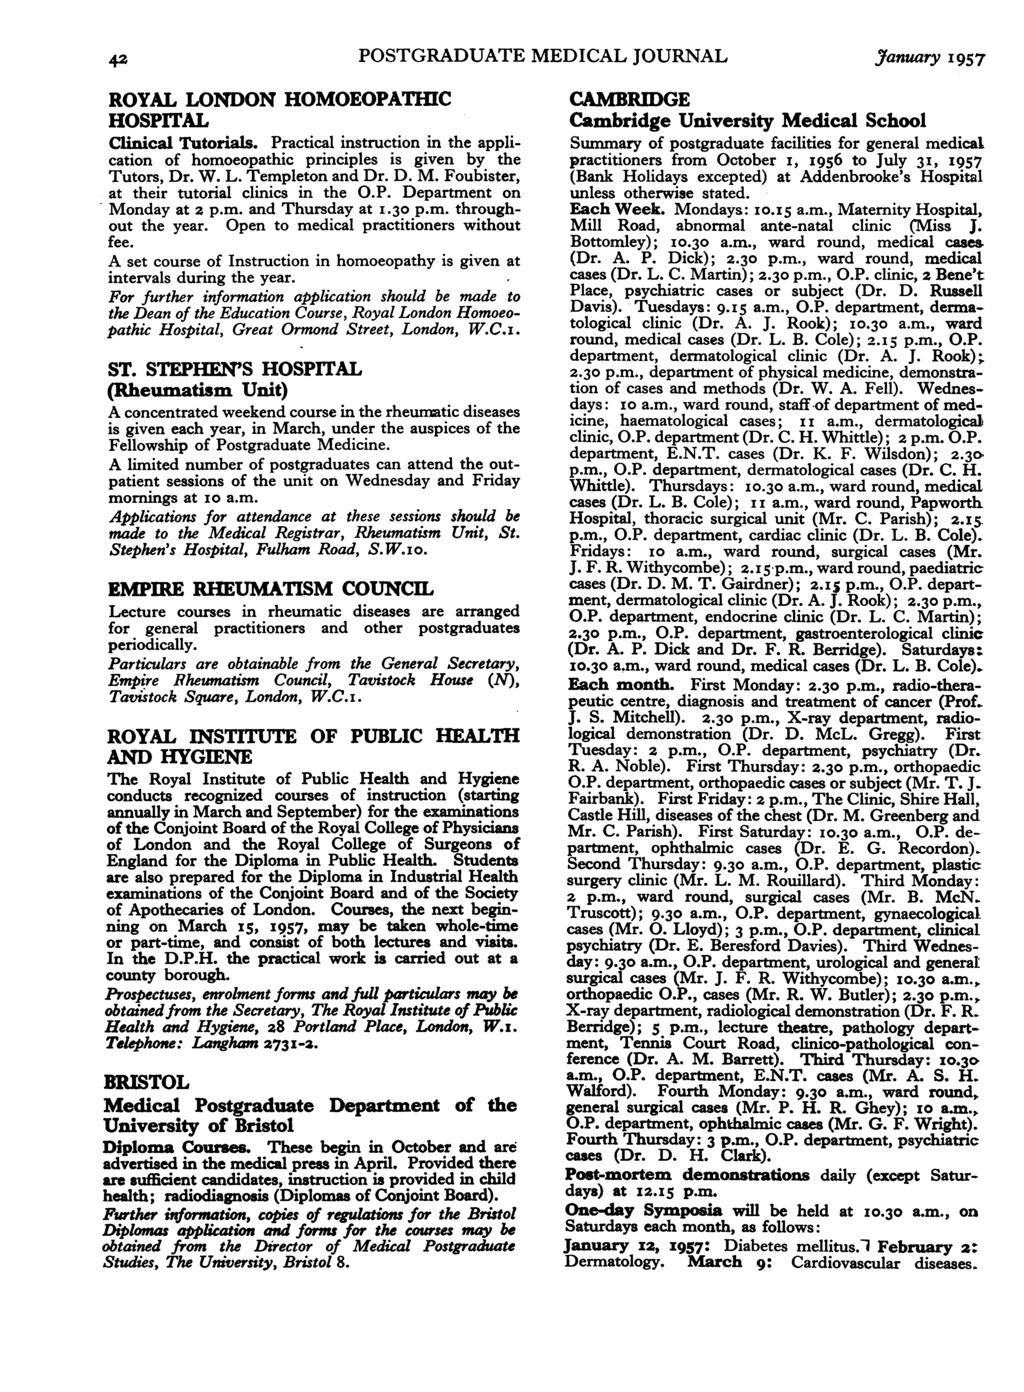 42 POSTGRADUATE MEDICAL JOURNAL January 1957 ROYAL LONDON HOMOEOPATHIC HOSPITAL Clinical Tutorials. Practical instruction in the application of homoeopathic principles is given by the Tutors, Dr. W.